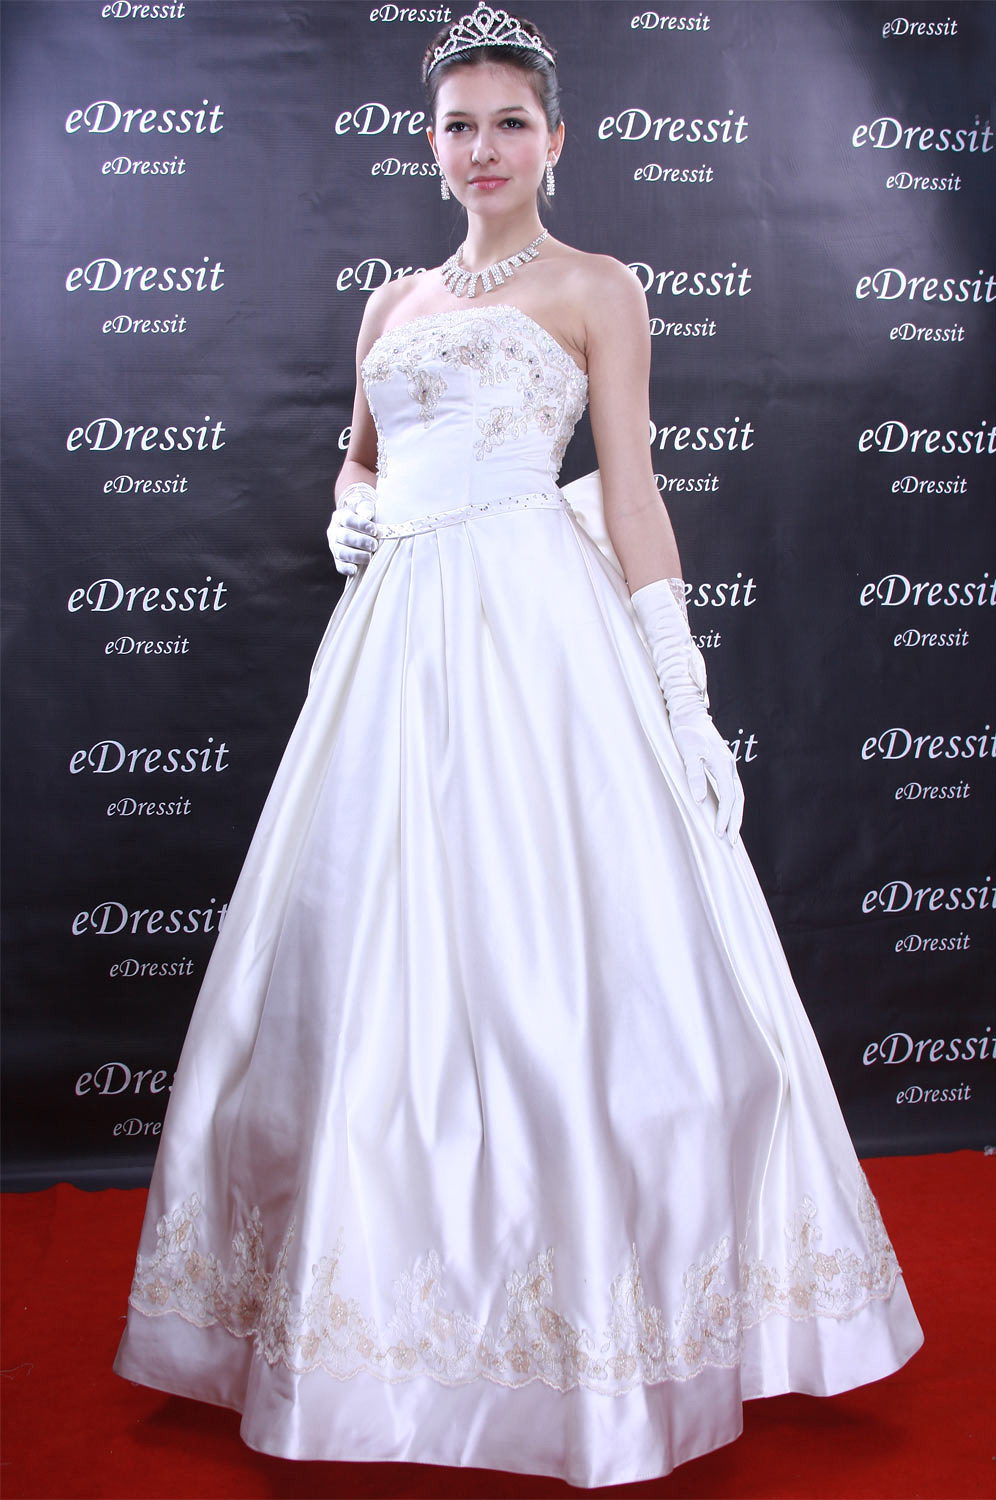 Christmas Discount 50% Off eDressit White Prom Gown Evening Wedding Dress (01091207)